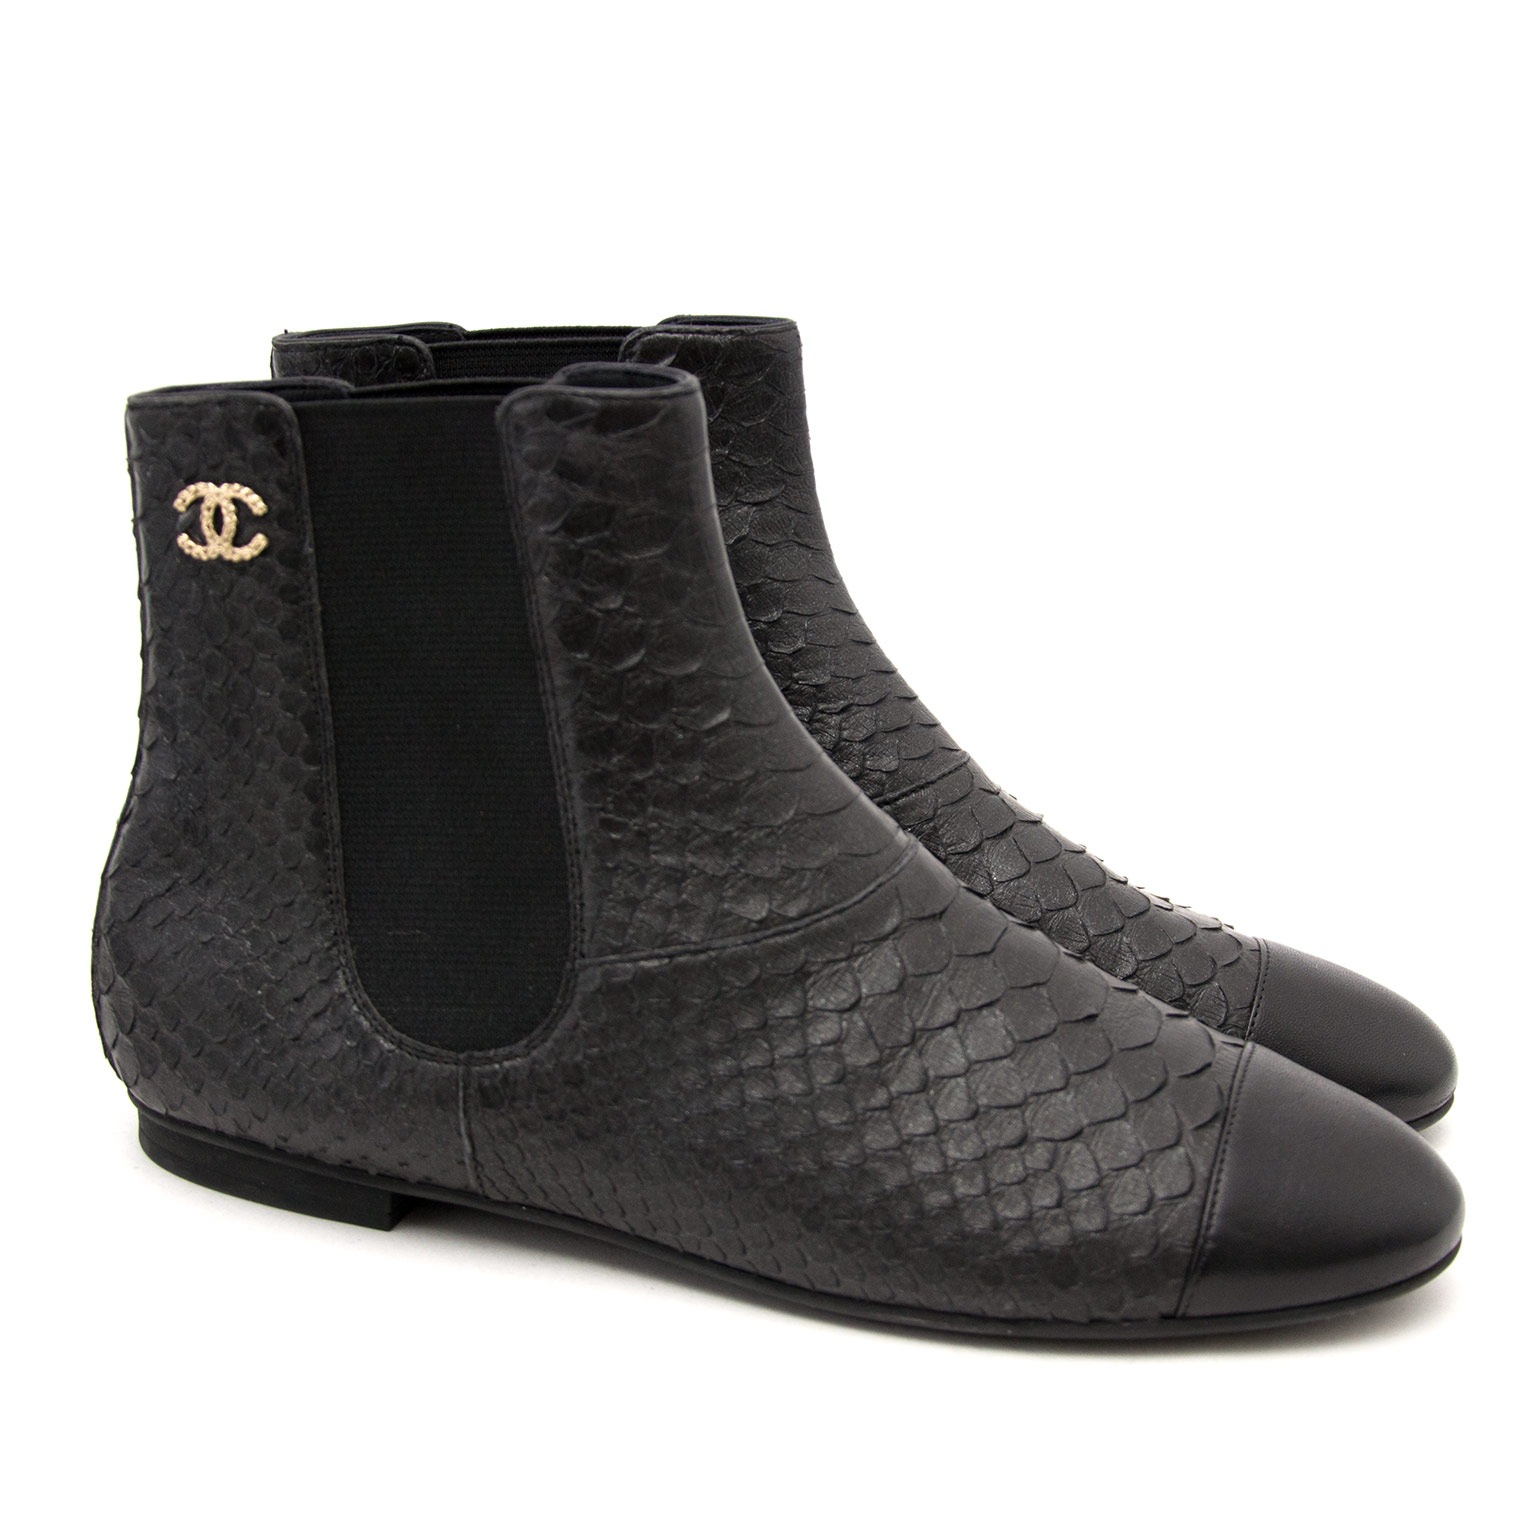 100% authentic Chanel Python Ankle Boots for the best price available online at Labellov